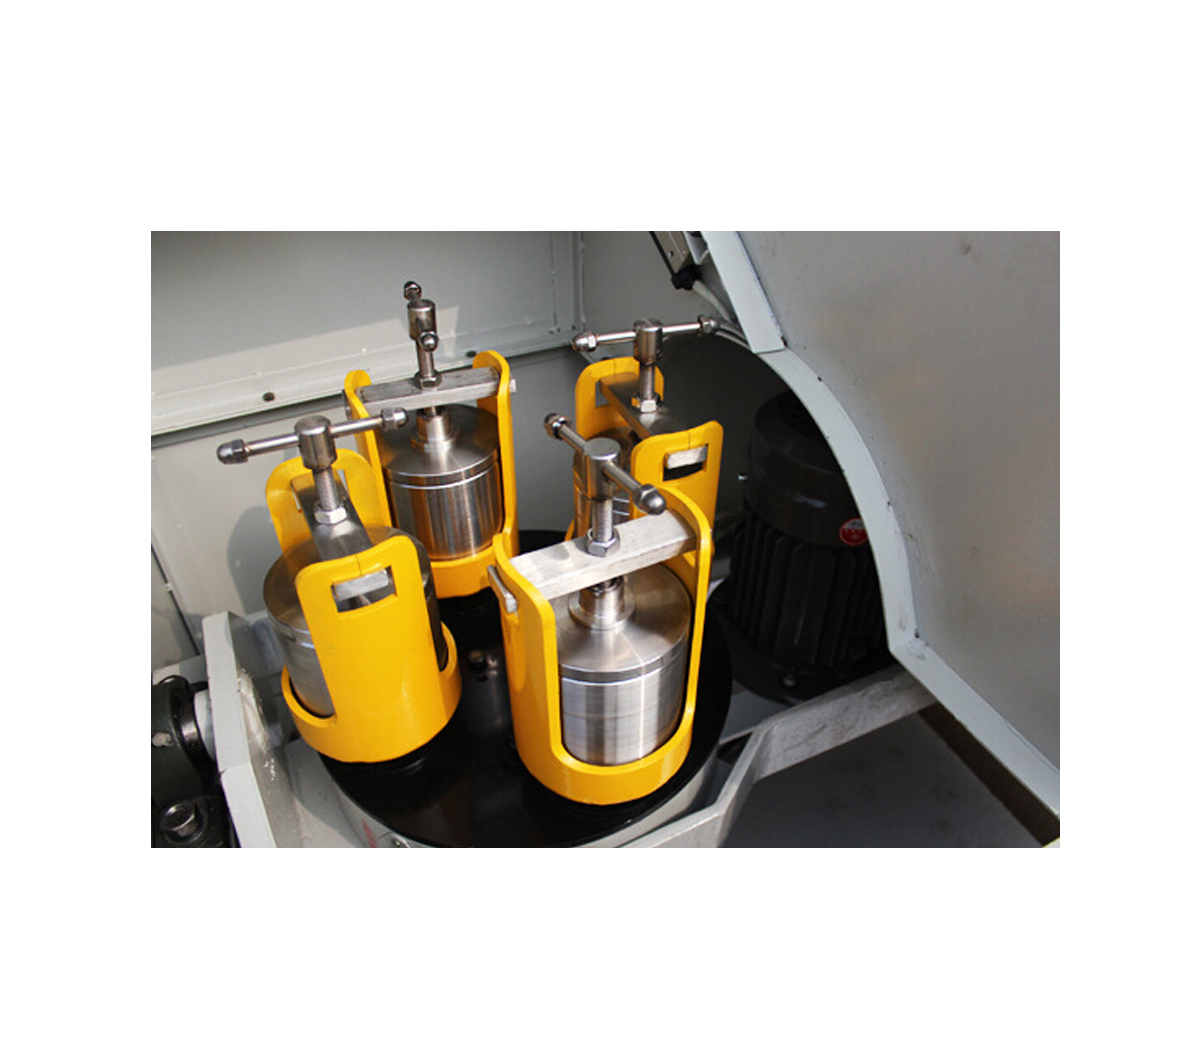 Bench-Top Planetary Ball Mill with four Stainless Stell Jars & Lock Clamps CY-PBM-V-0.4L